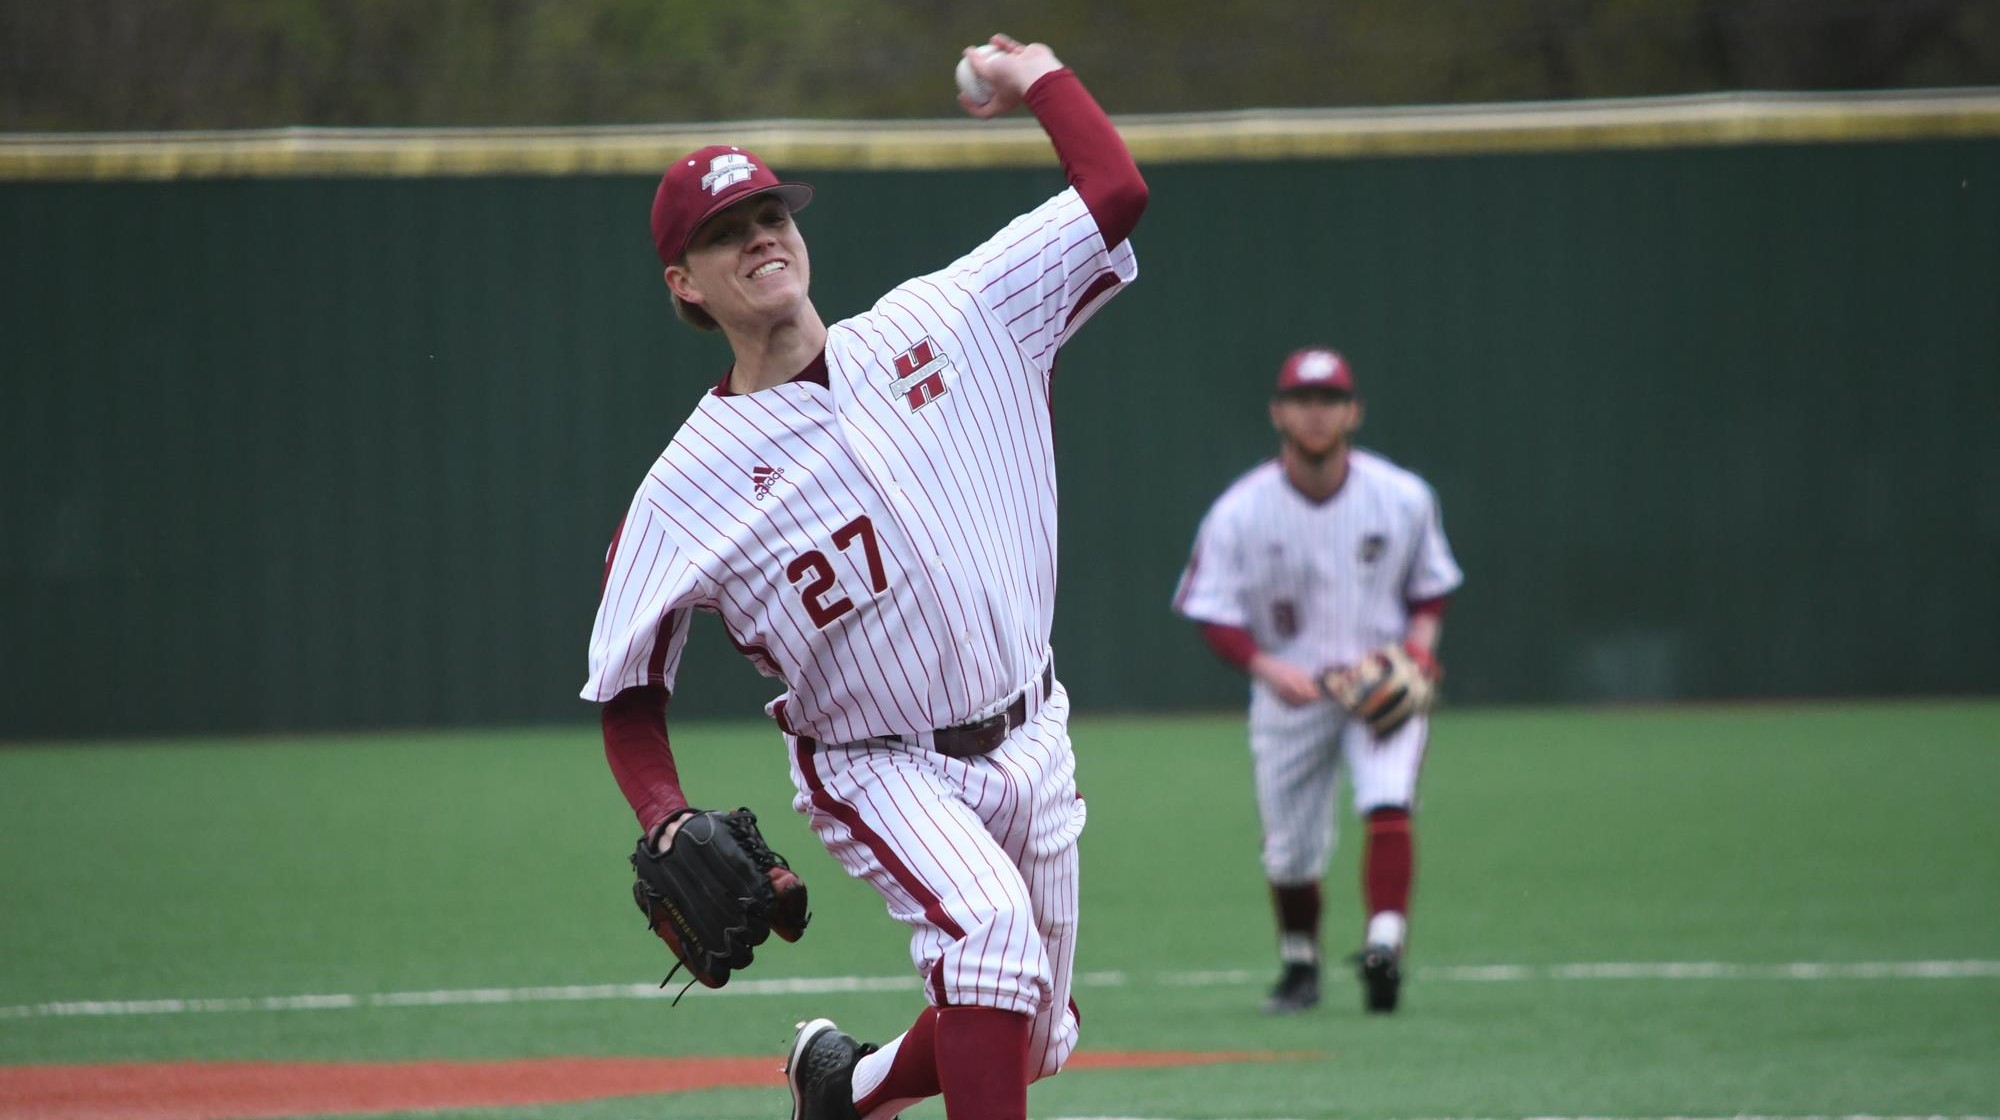 Reddies Look to Keep Rolling at Southeastern - Henderson